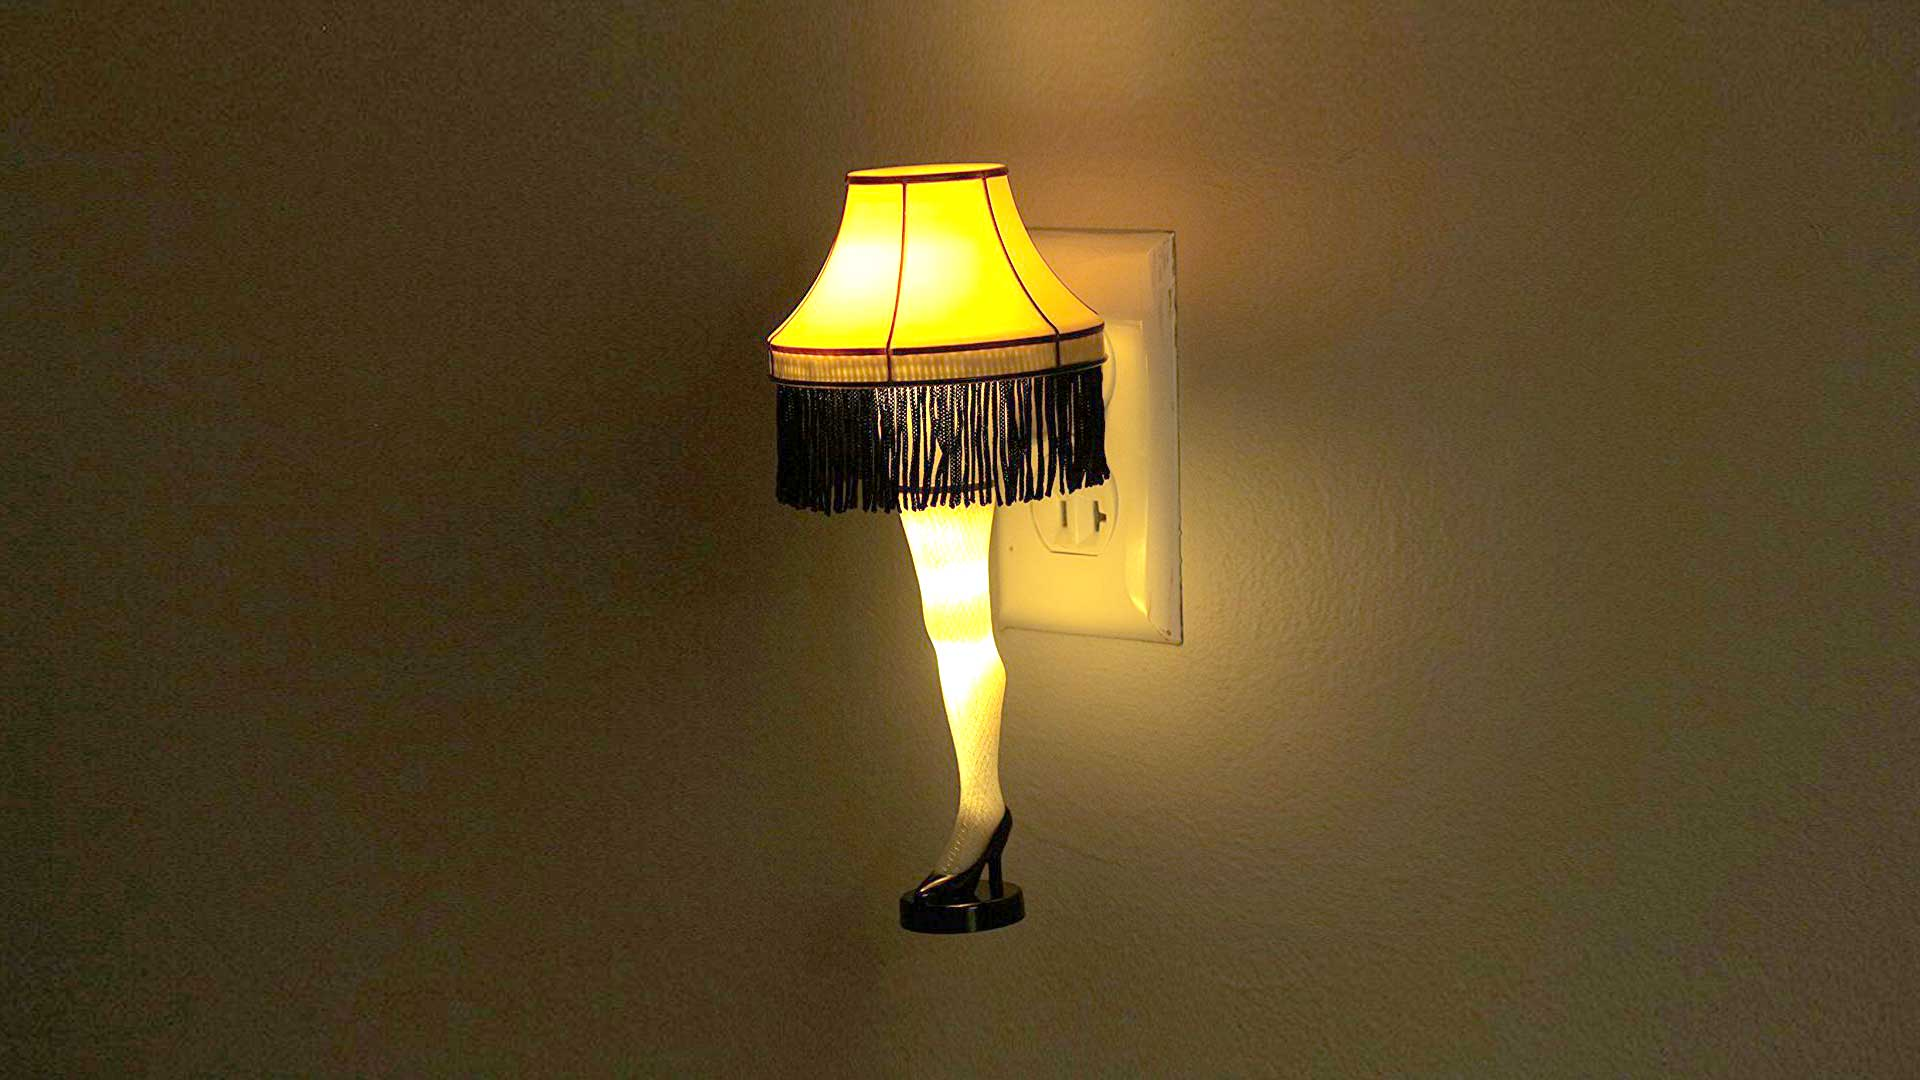 Lamp And Nightlight Leg Lamp The Ultimate Holiday Decoration From A